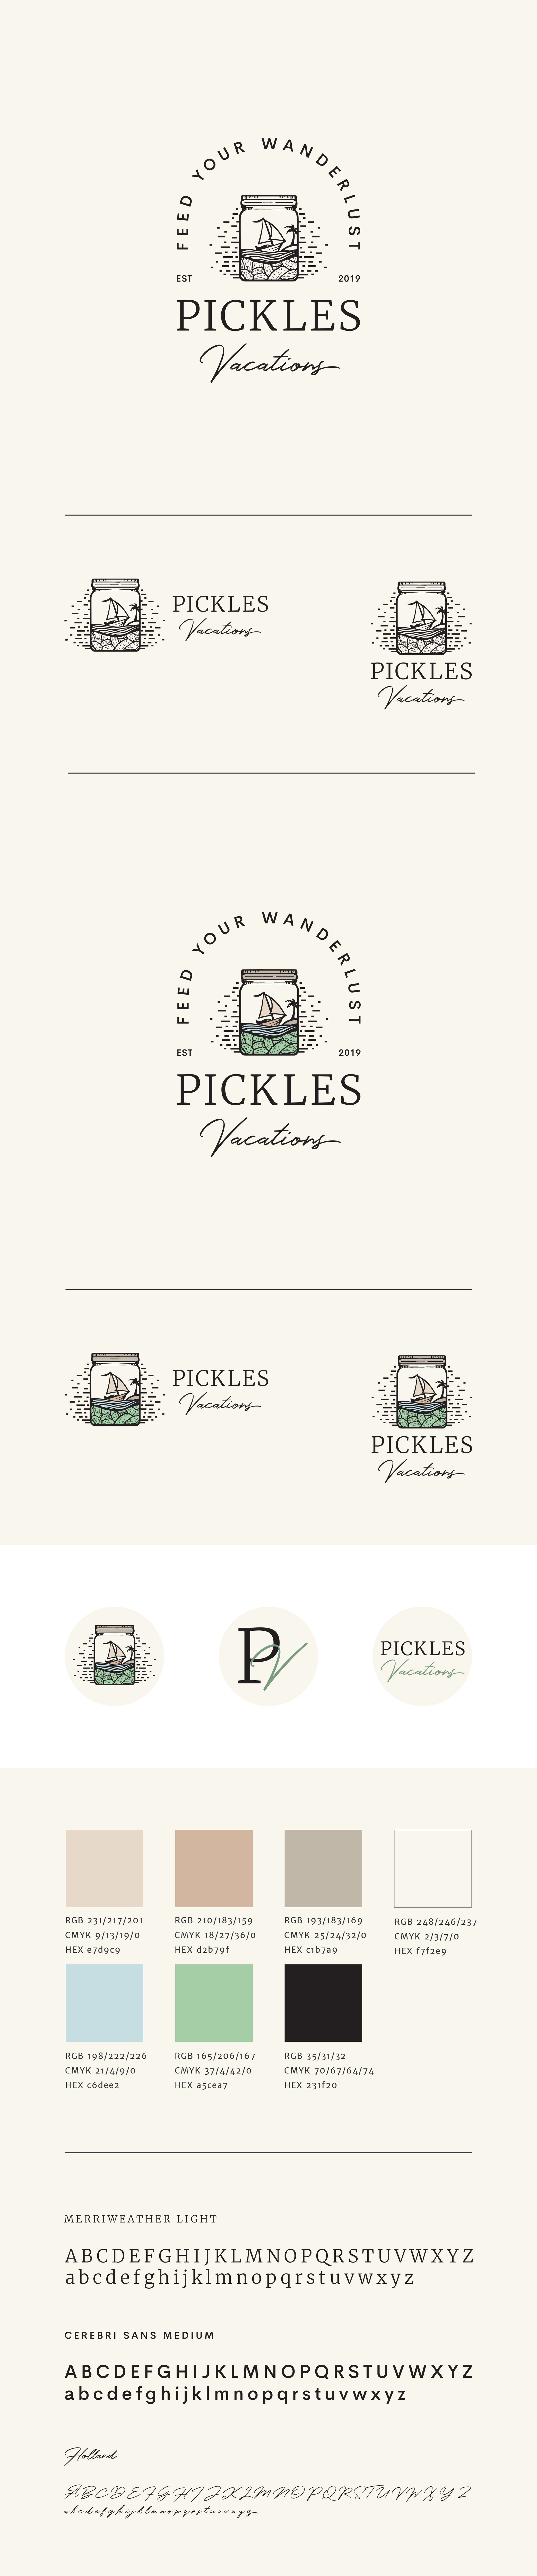 Logo System Pickles Vacations